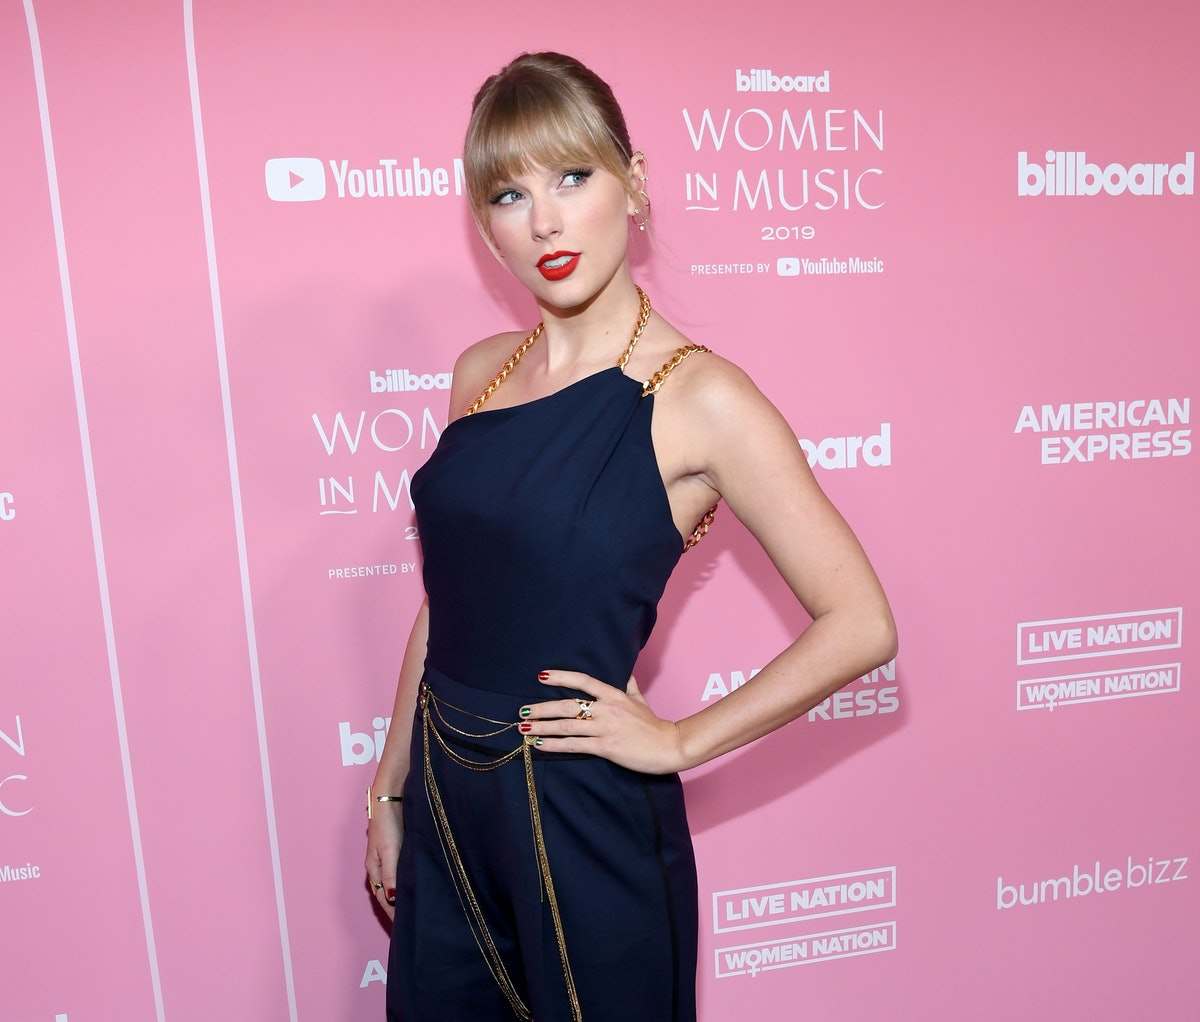 LOS ANGELES, CALIFORNIA - DECEMBER 12: Taylor Swift attends Billboard Women In Music 2019, presented by YouTube Music, on December 12, 2019 in Los Angeles, California. (Photo by Kevin Mazur/Getty Images for Billboard)